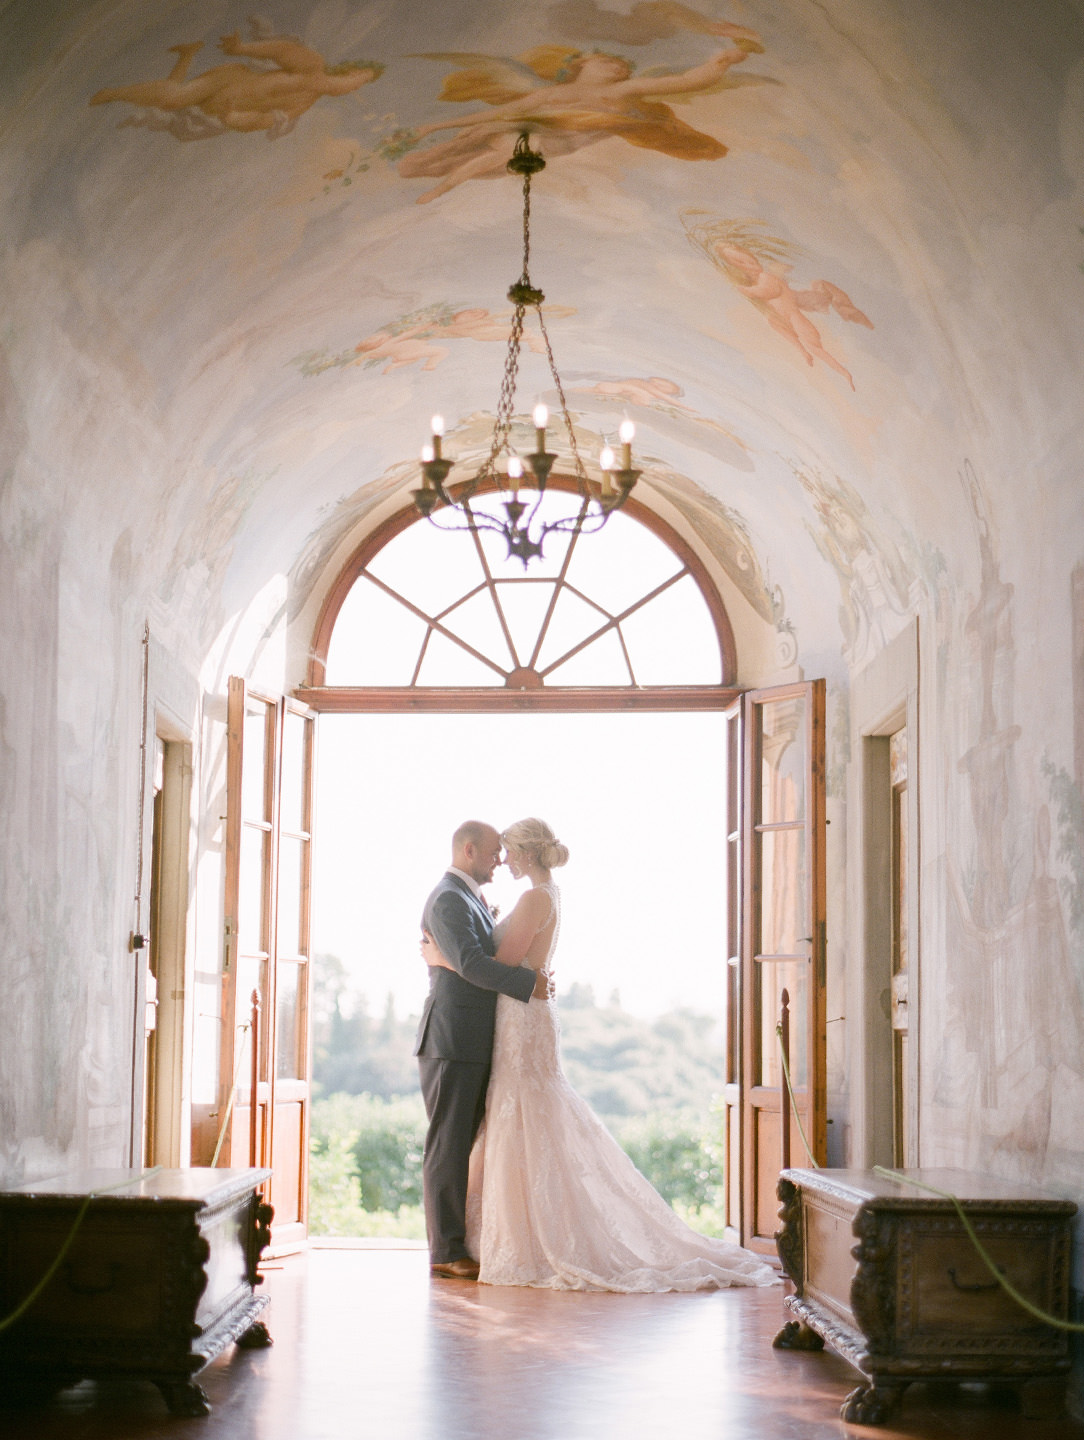 bride and groom portrait at Medicea di lilliano in tuscany